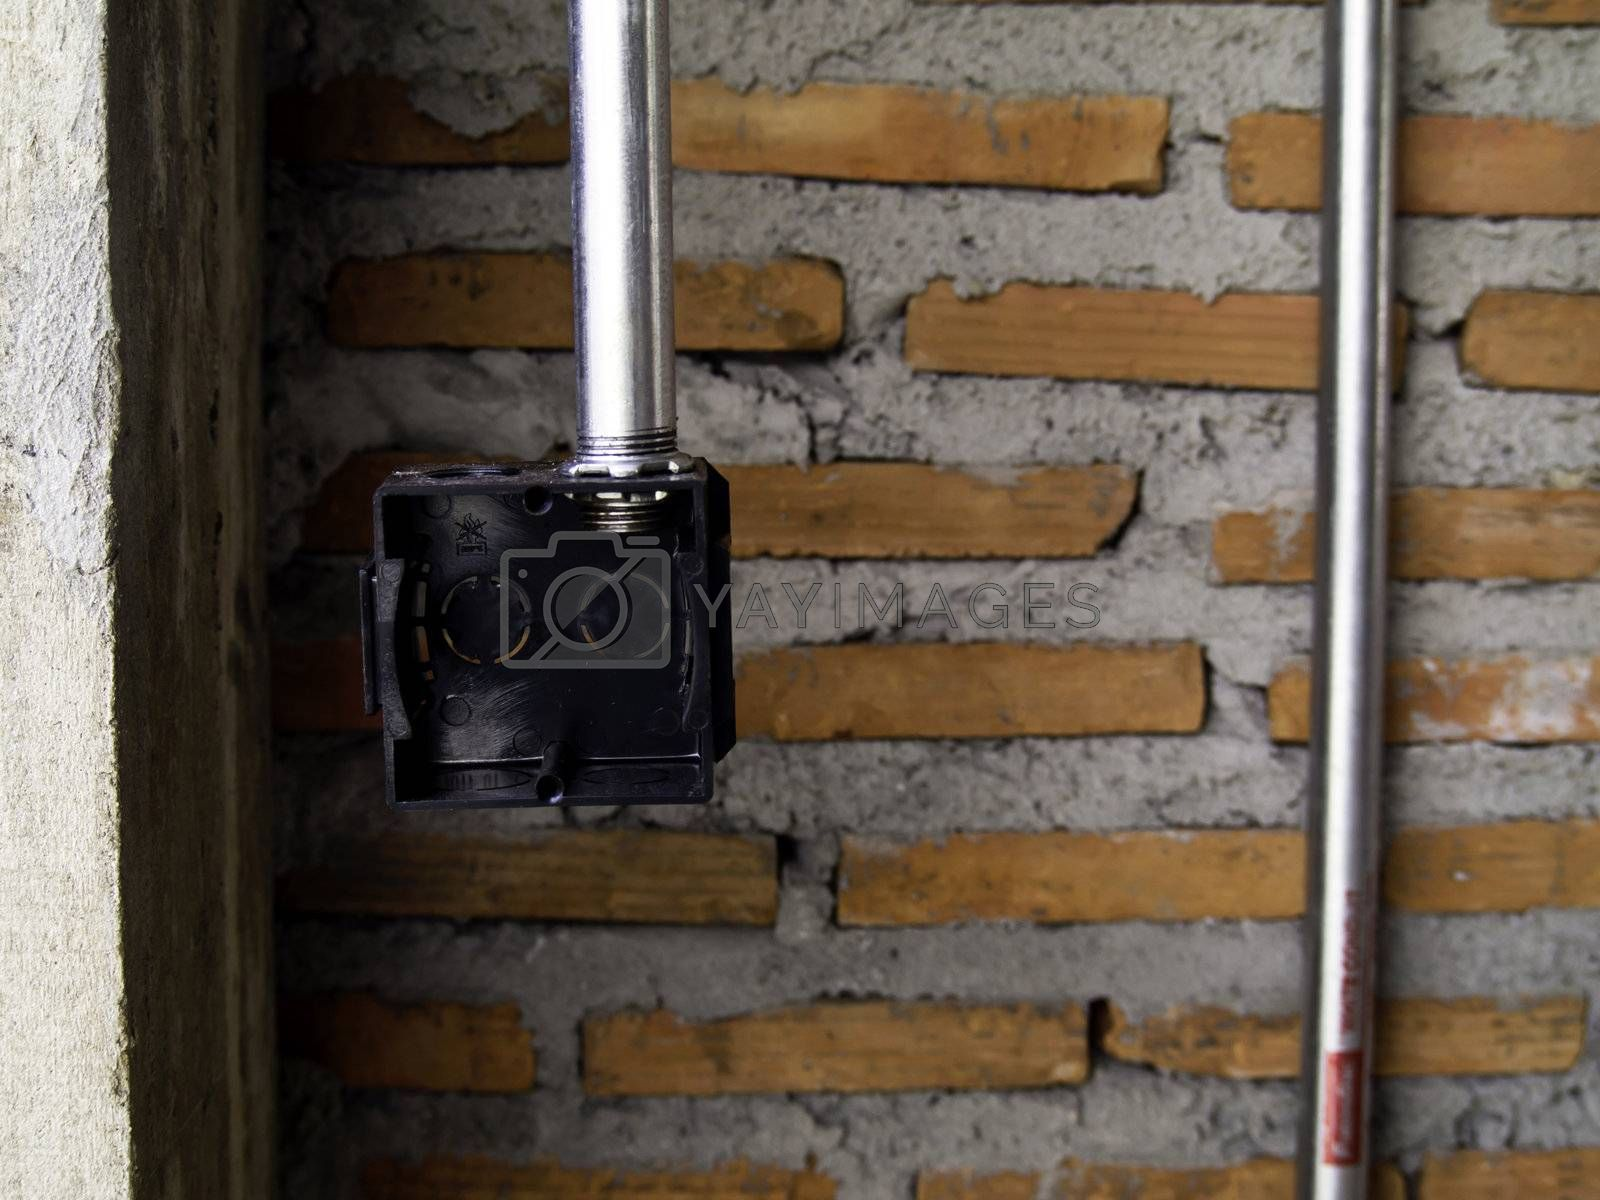 Plastic box for electrical work with brick wall background